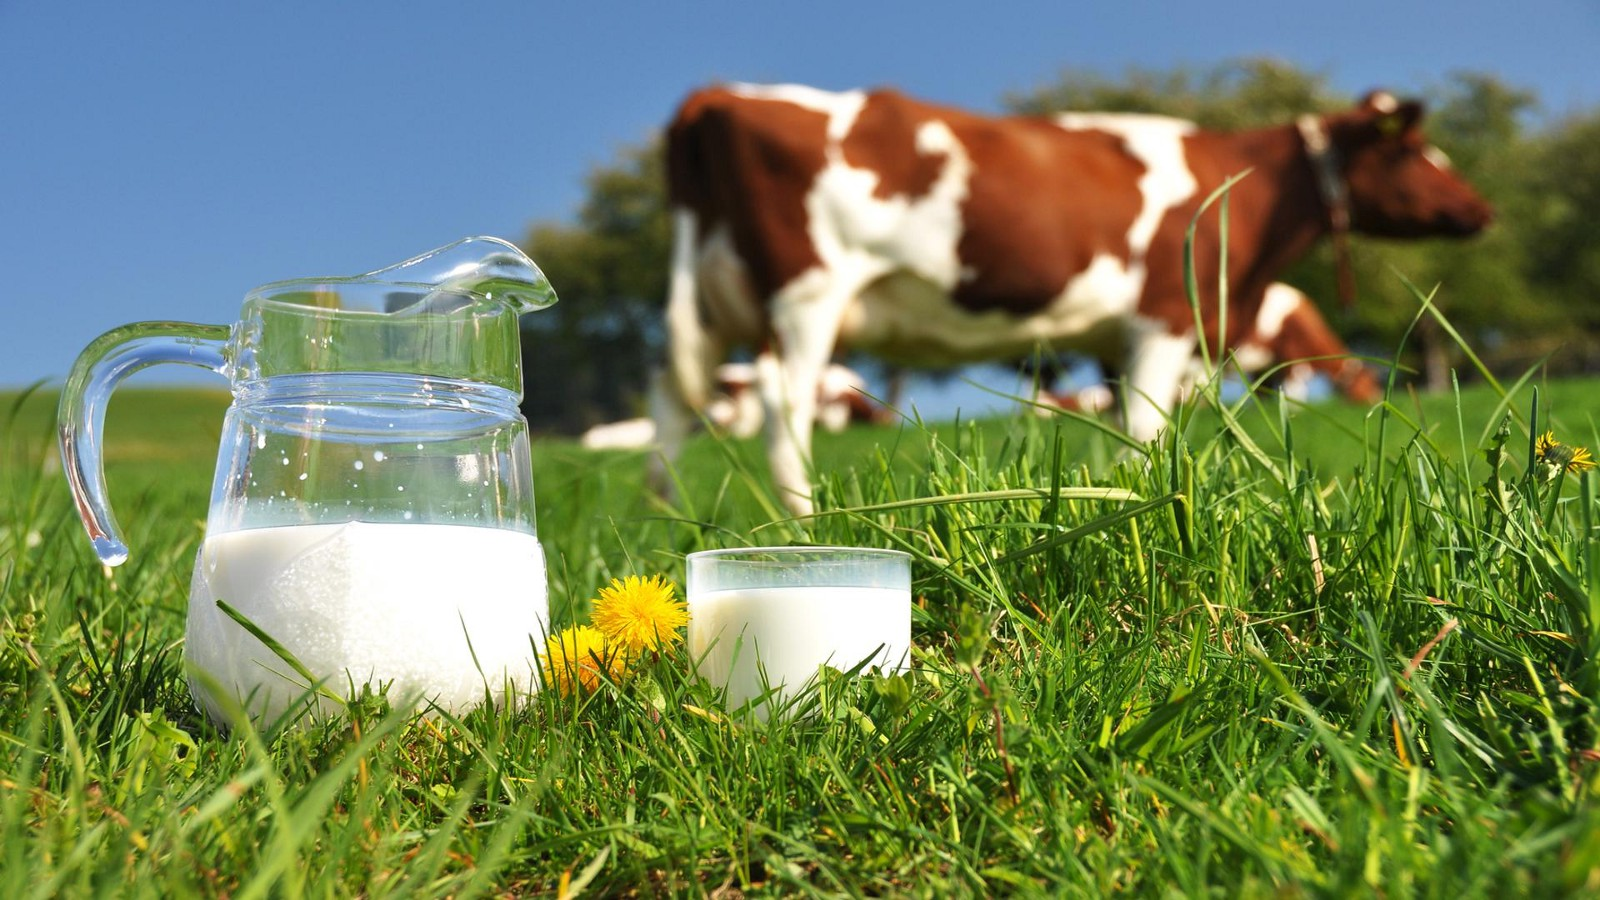 Cow Milk Seems To Be Everywhere And Is Often Taken For Granted But It Has Many Important Health Benefits Humans Including Its Ability Boost The